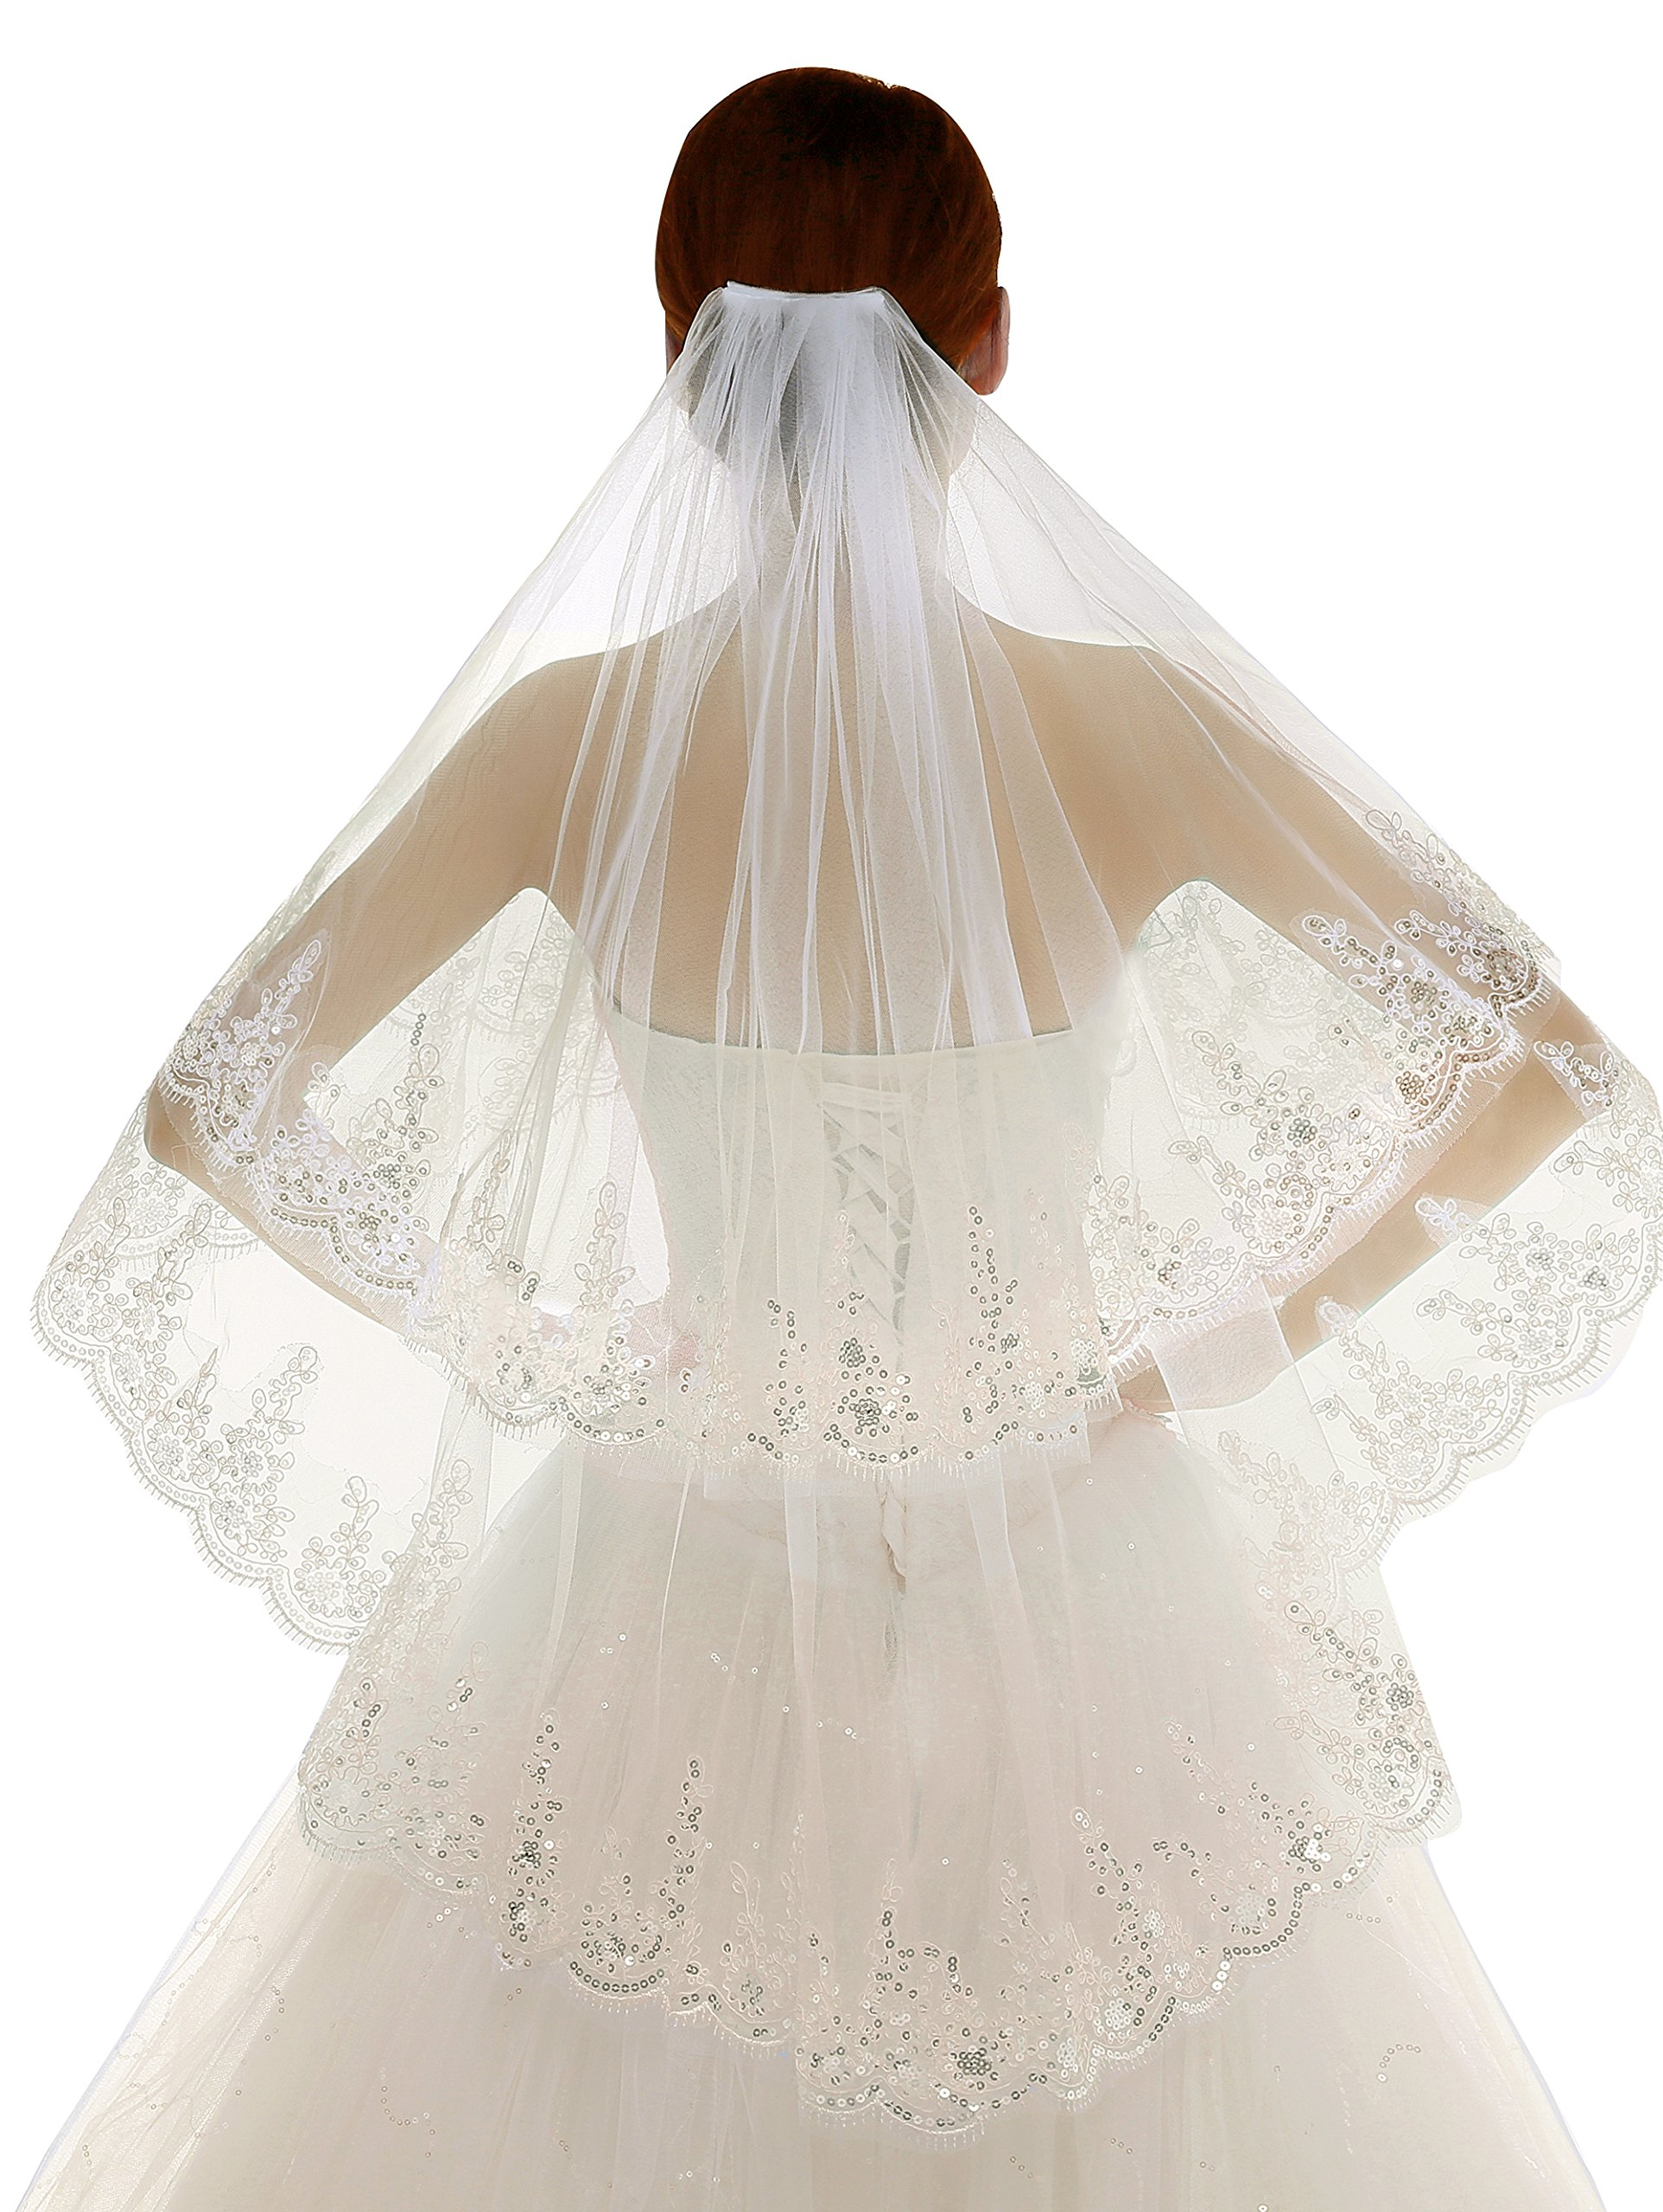 Edith qi 2 Tier Lace Silver Lined Beaded Edge Fingertip Length Bridal Wedding Veil,Ivory,Free Size